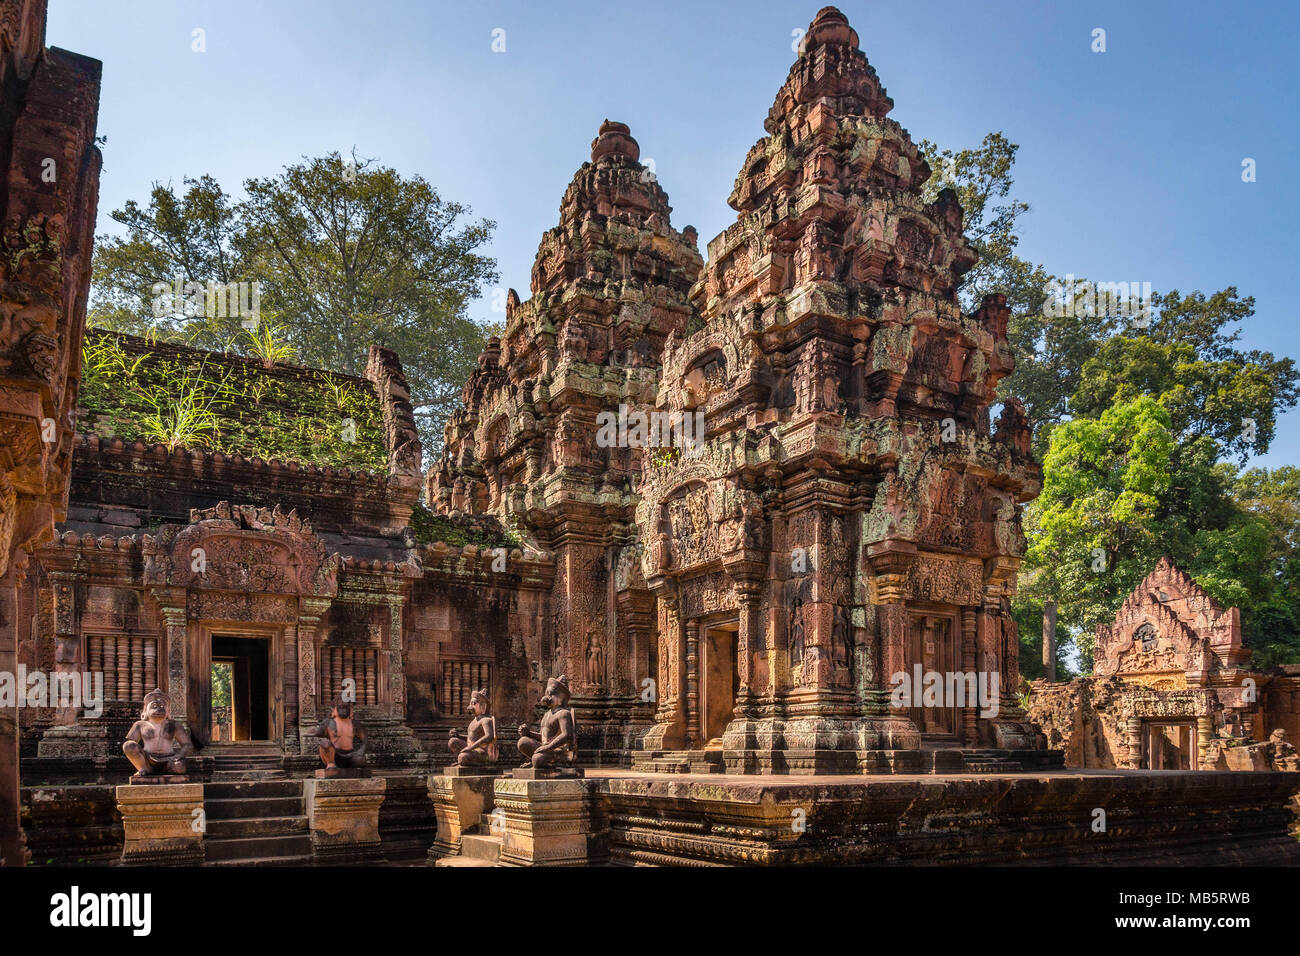 Banteay Srei, known as the 'lady temple', dates from 967 CE, and is dedicated to the Hindu god Shiva, in Siem Reap (Cambodia). - Stock Image